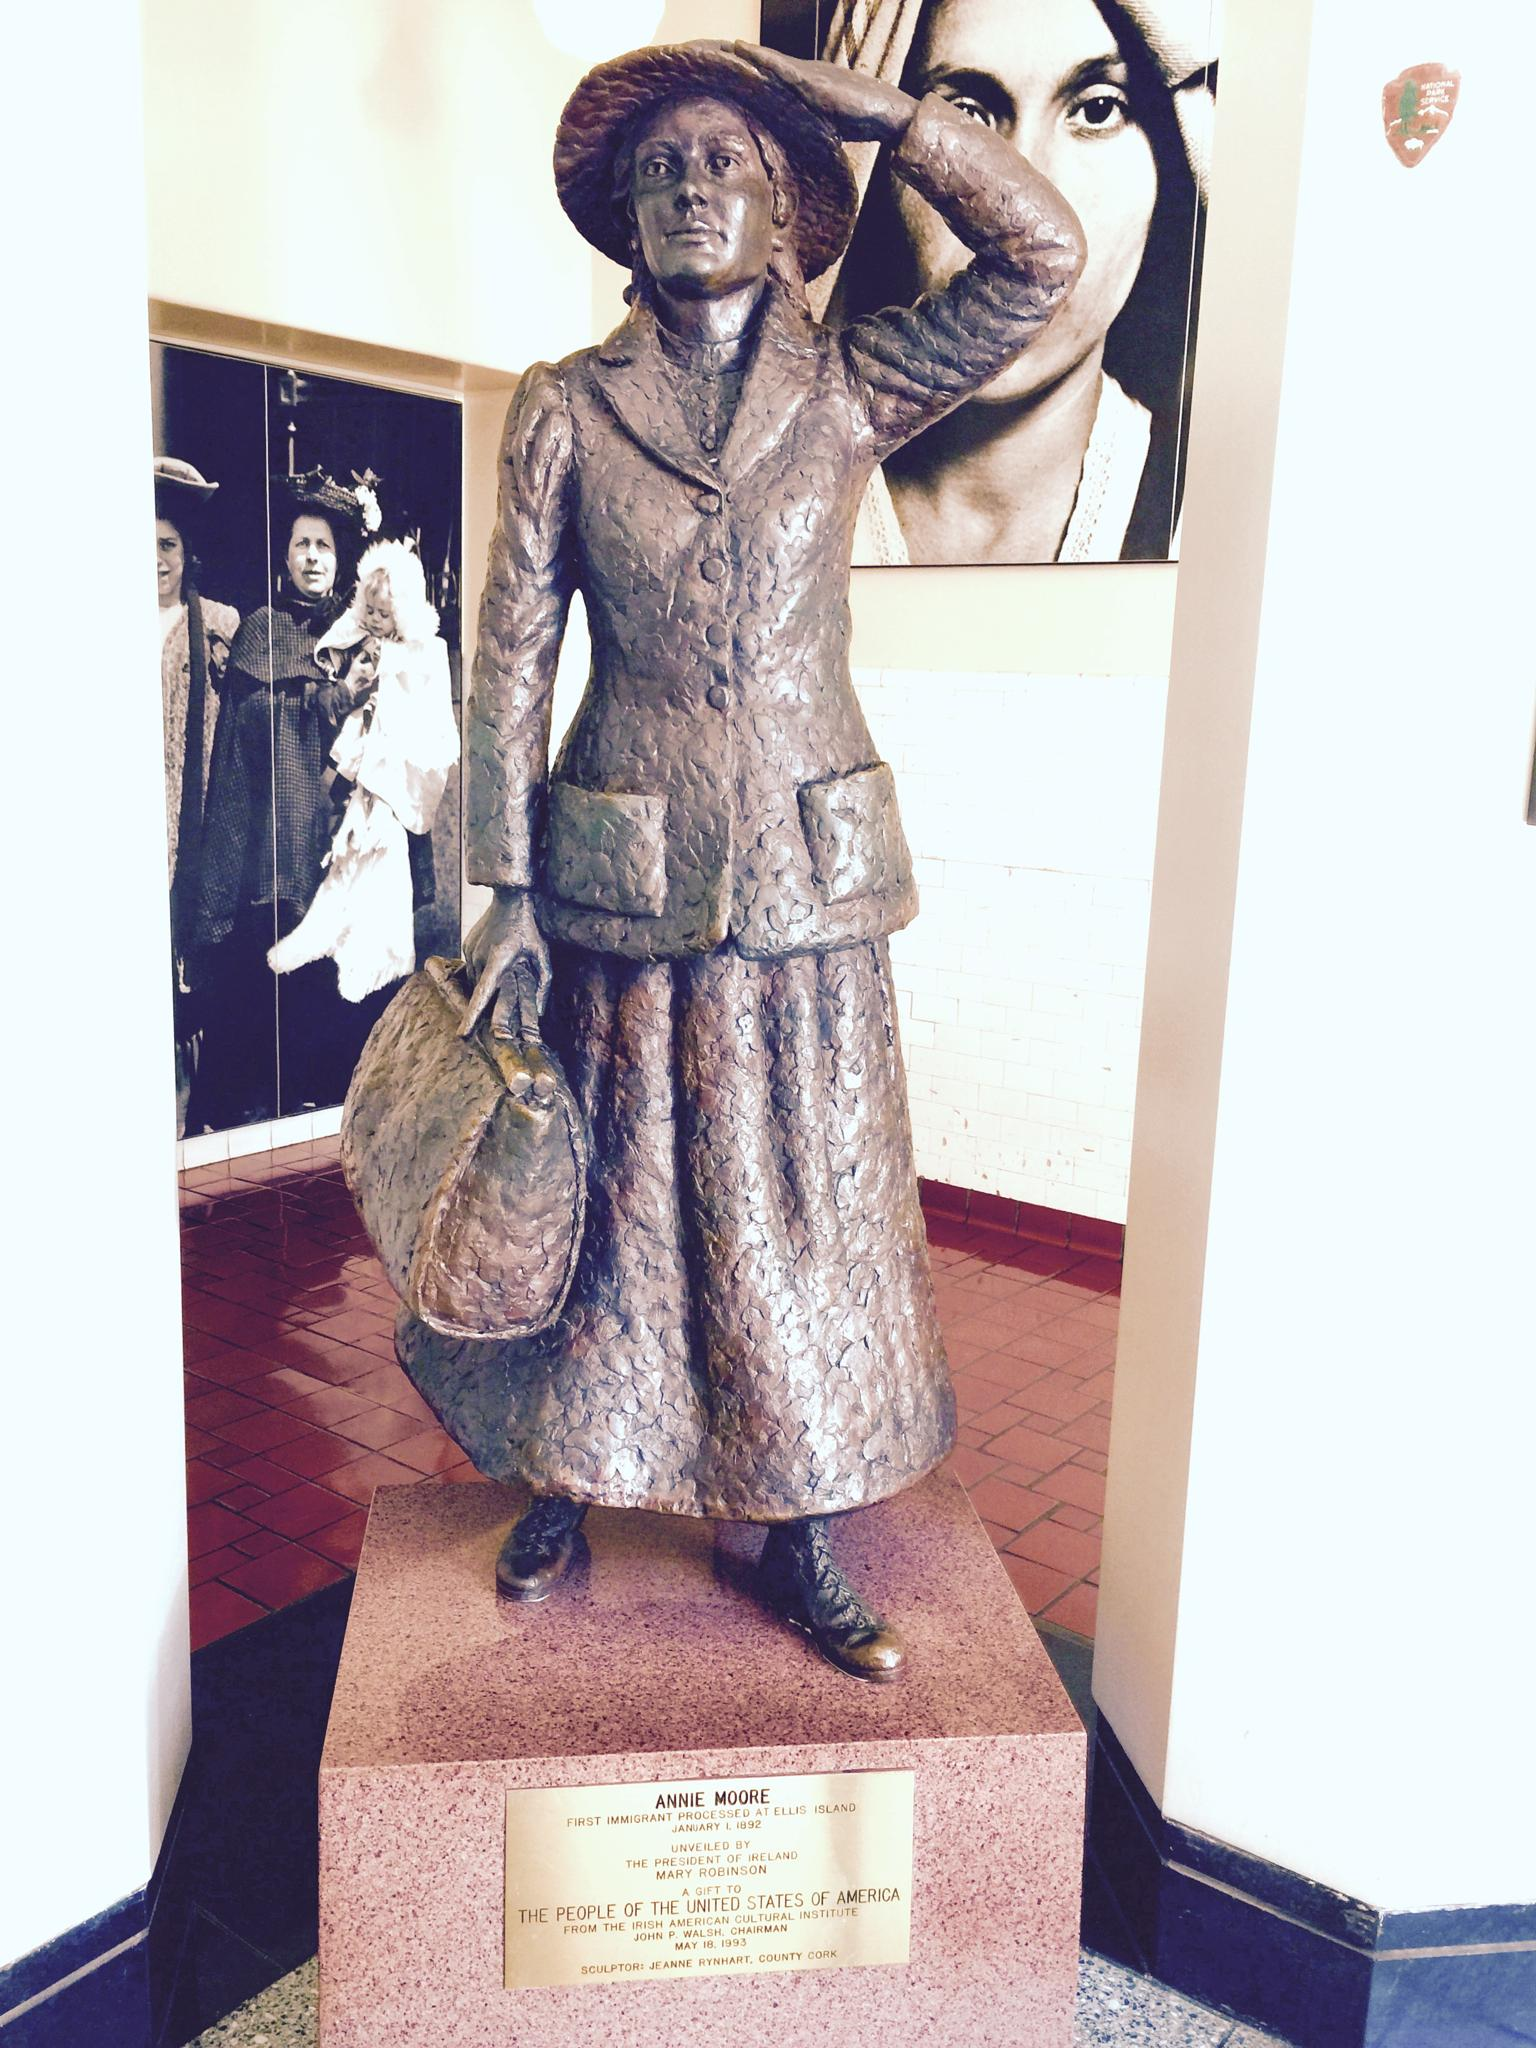 Annie Moore - 1st Person Ever Processed at Ellis Island - January 1, 1892 by Snickandmephotography